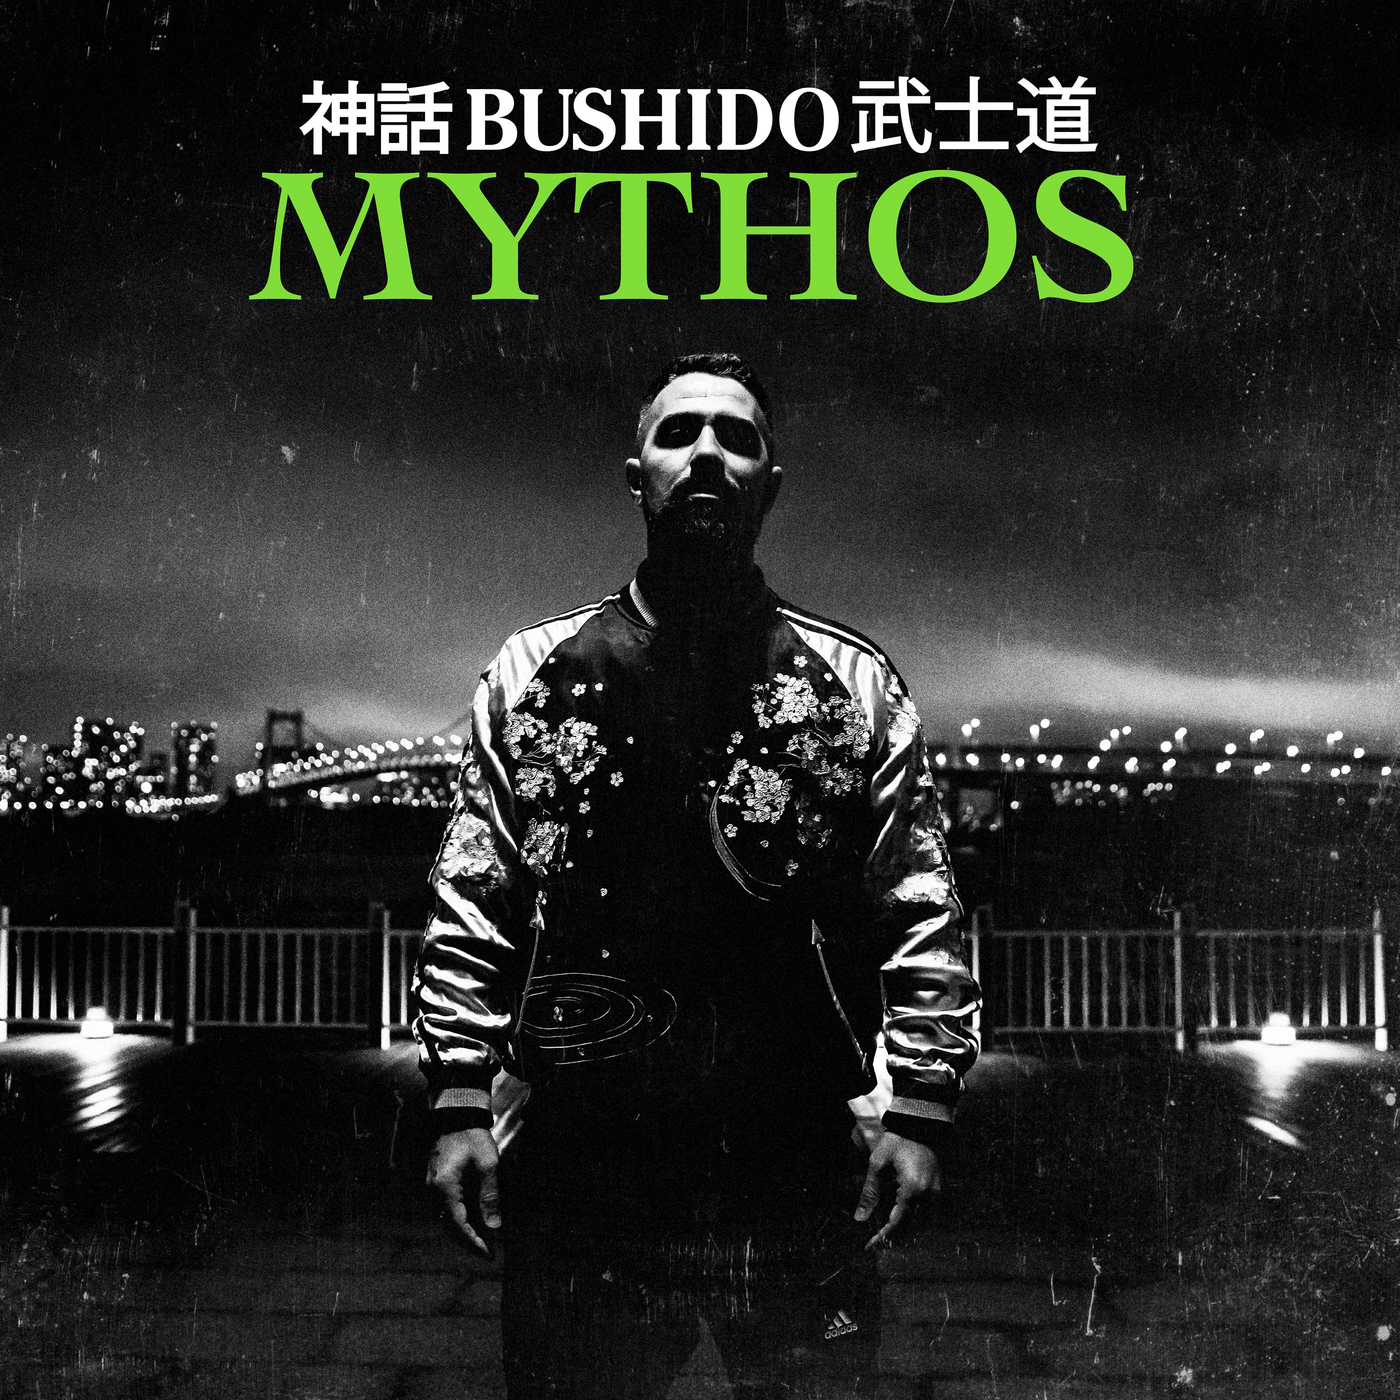 Bushido Radio: Listen to Free Music & Get The Latest Info | iHeartRadio